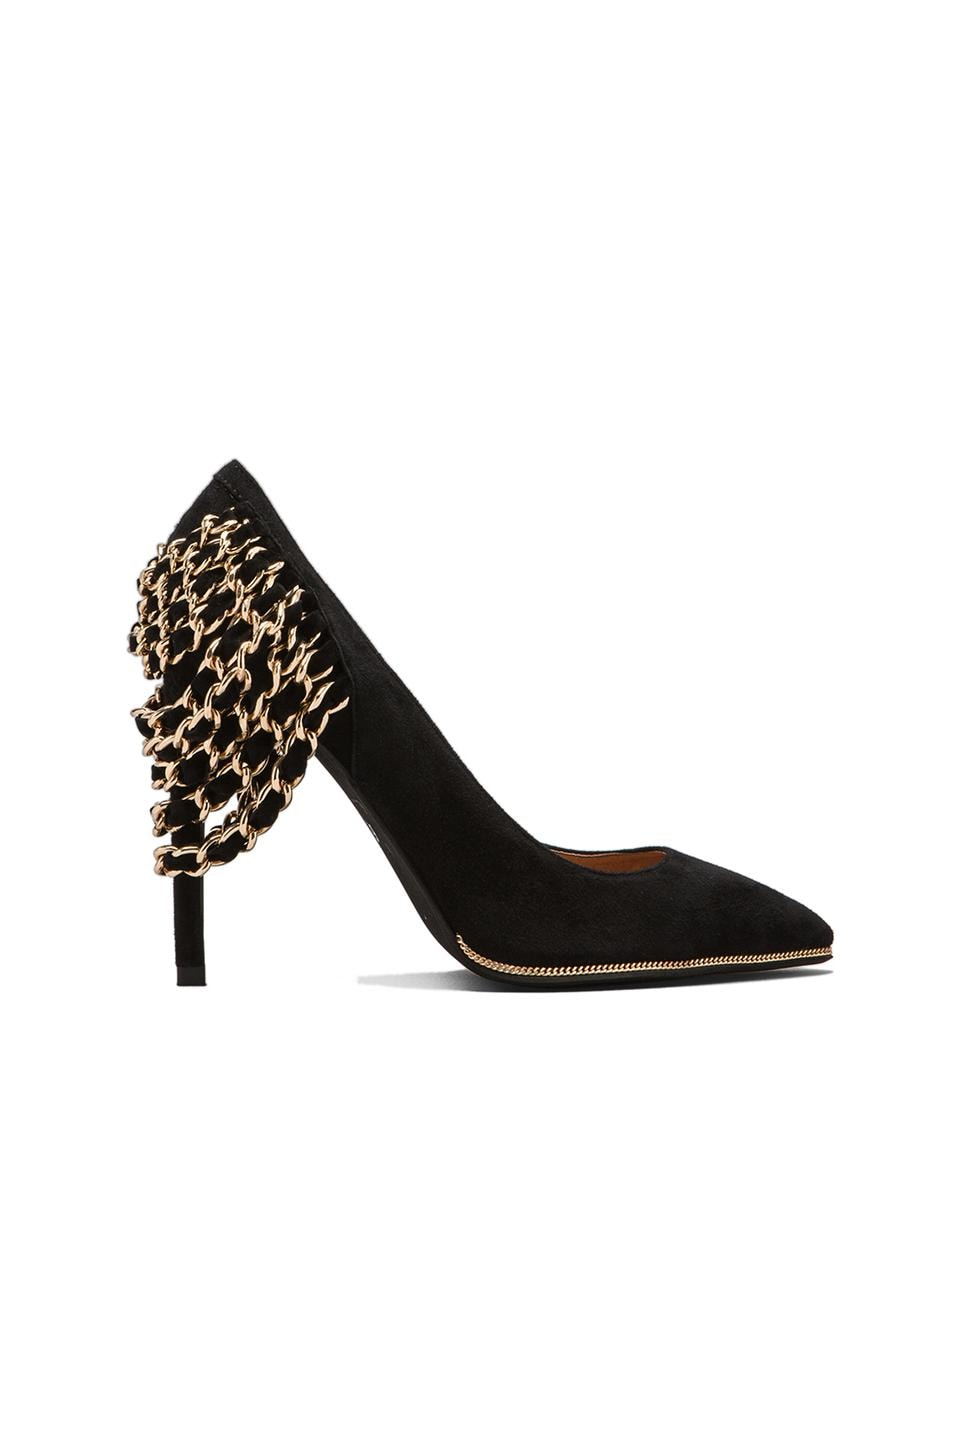 Jeffrey Campbell Back Chain Suede Heel in Black/Gold